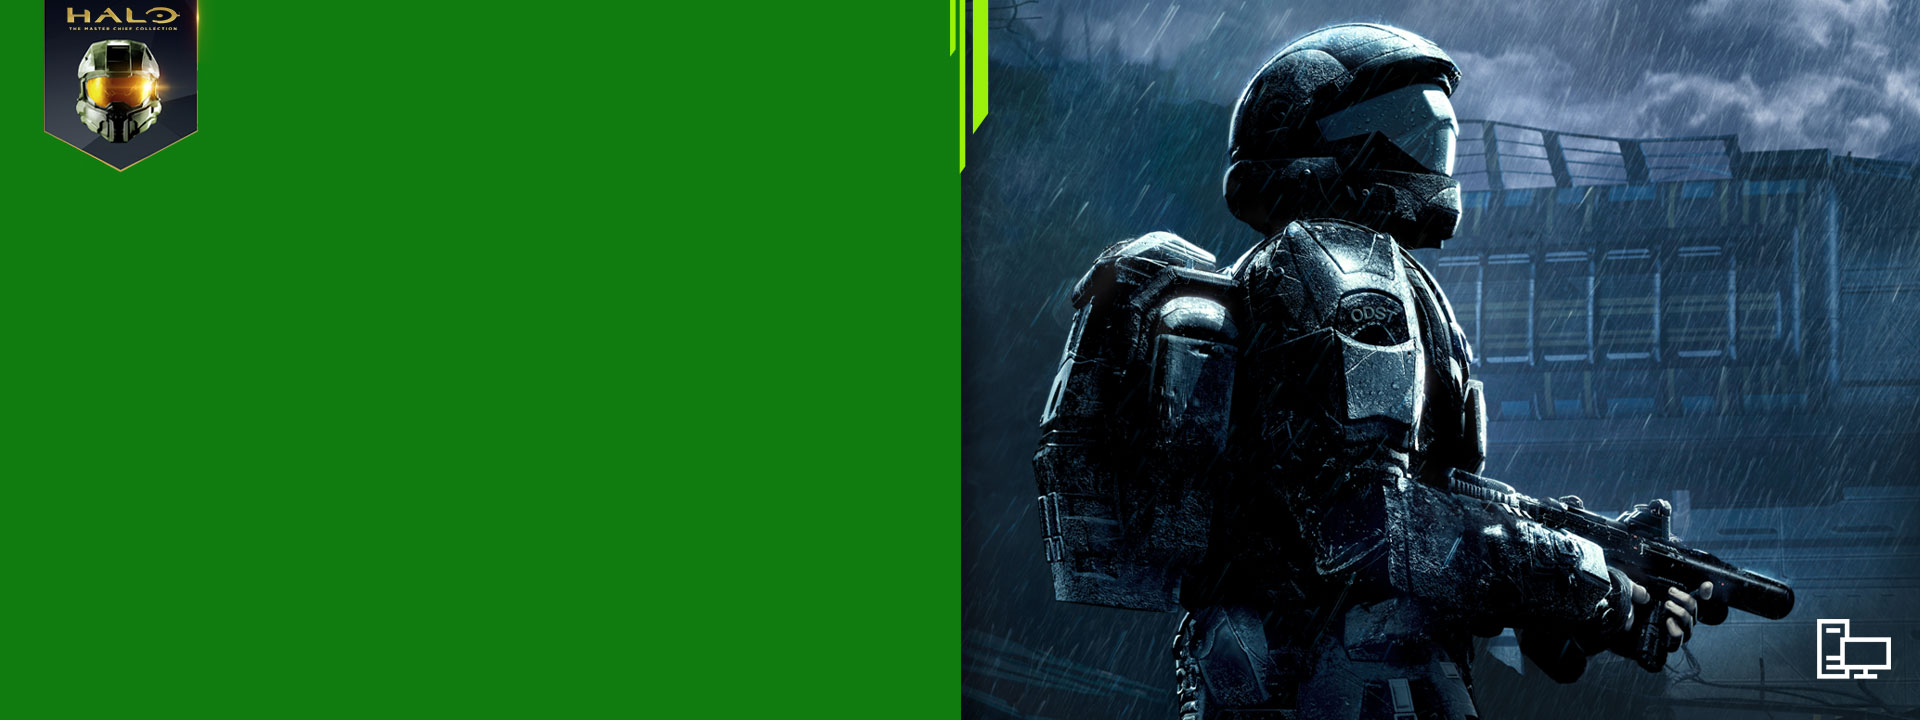 An ODST trooper holds a smg in the rain on New Mombasa. Xbox Game Pass logo, PC icon, Halo badge